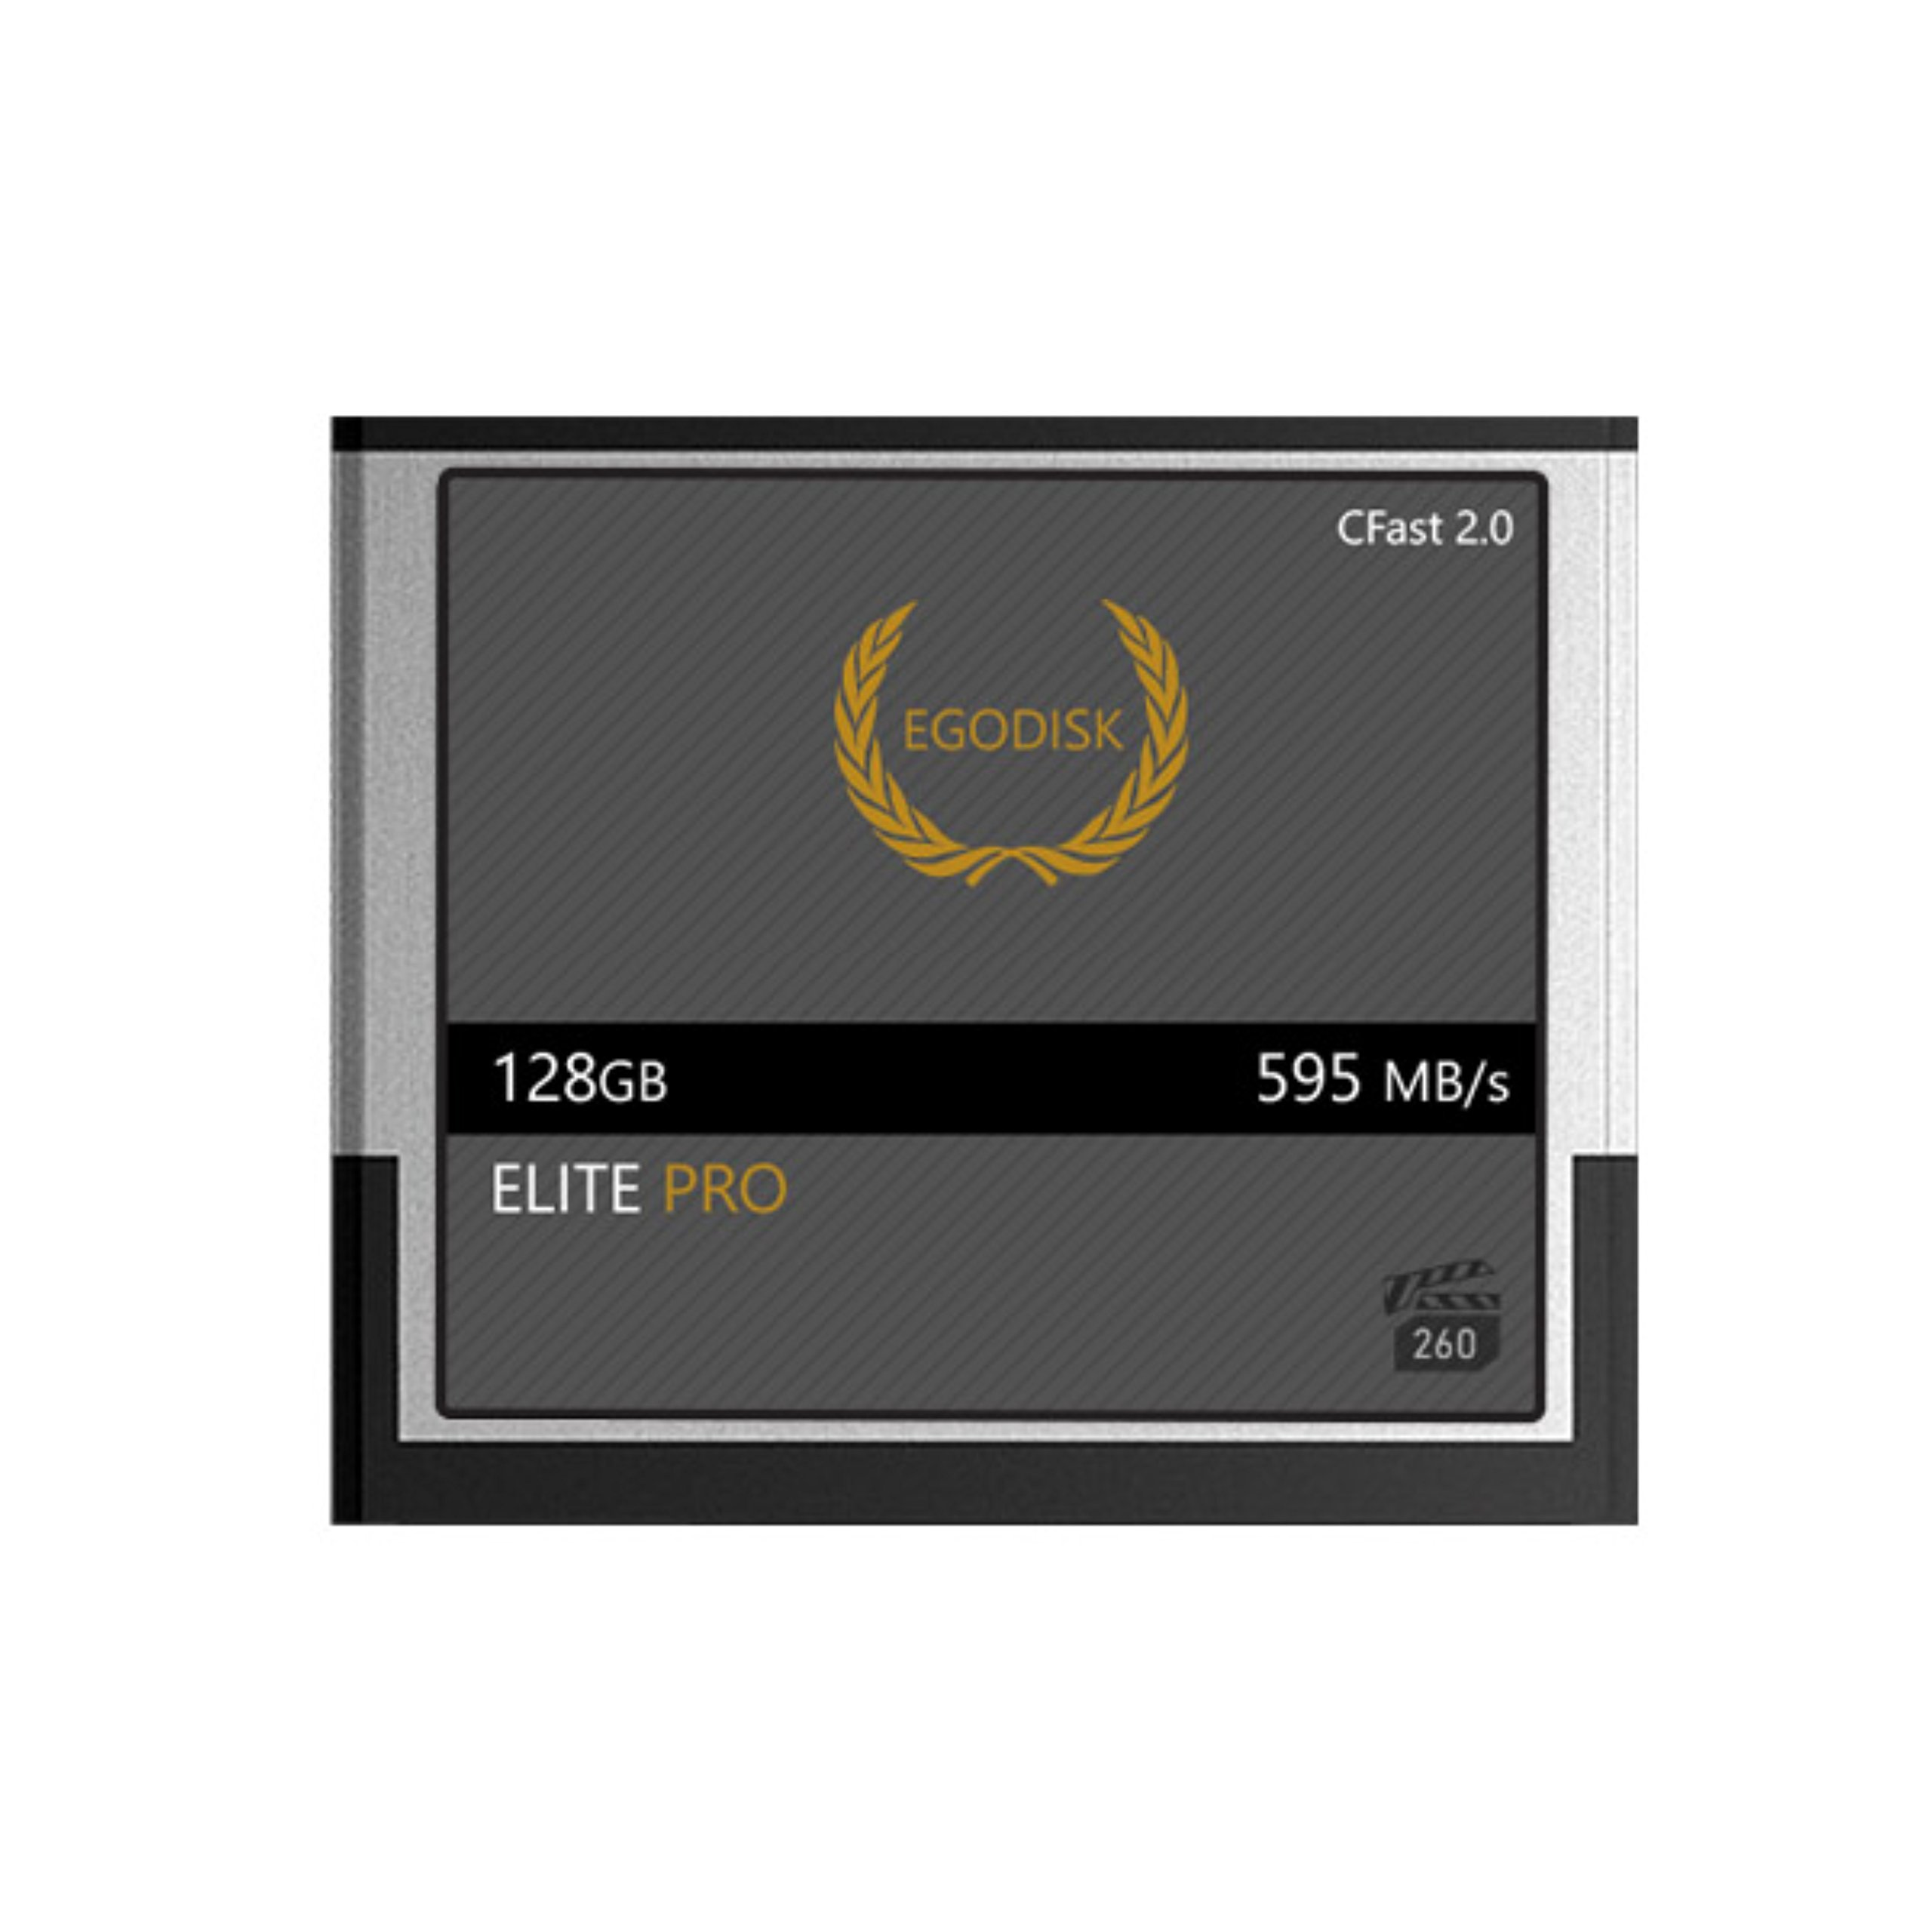 EgoDisk ELITE PRO 128GB CFast 2.0 Card - (EOS 1DX Mark II | EOS C200 | EOS C300 Mark II | EOS C700 | XC10 | XC15) by EgoDisk